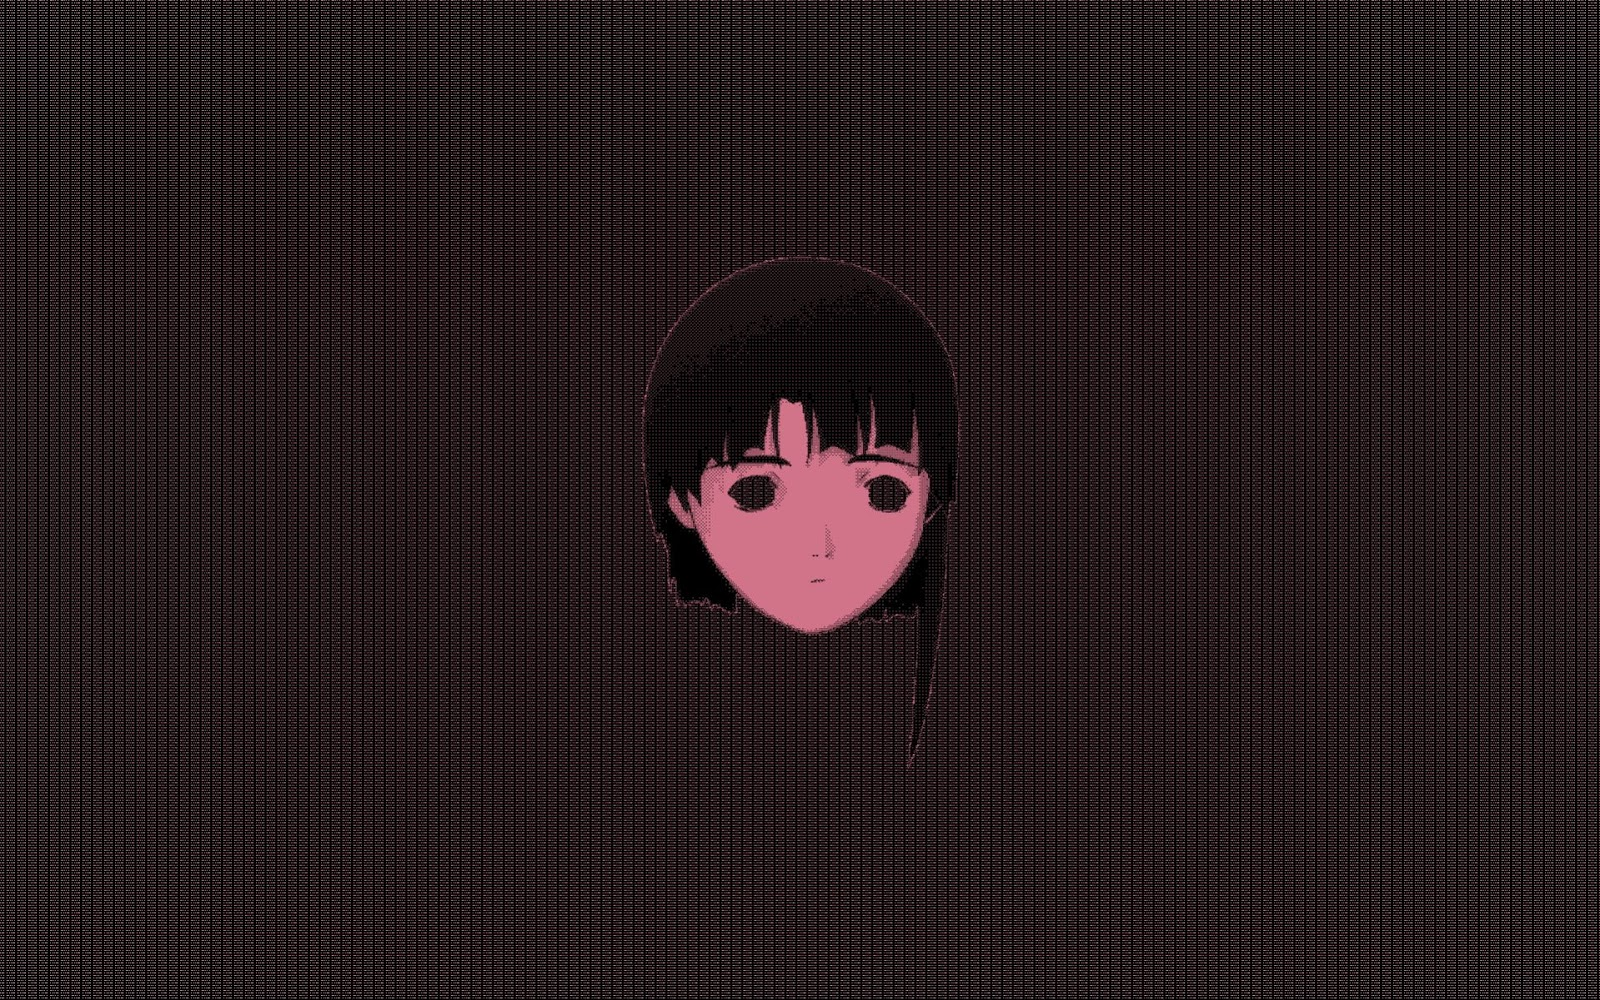 Serial Experiments Lain Wallpapers